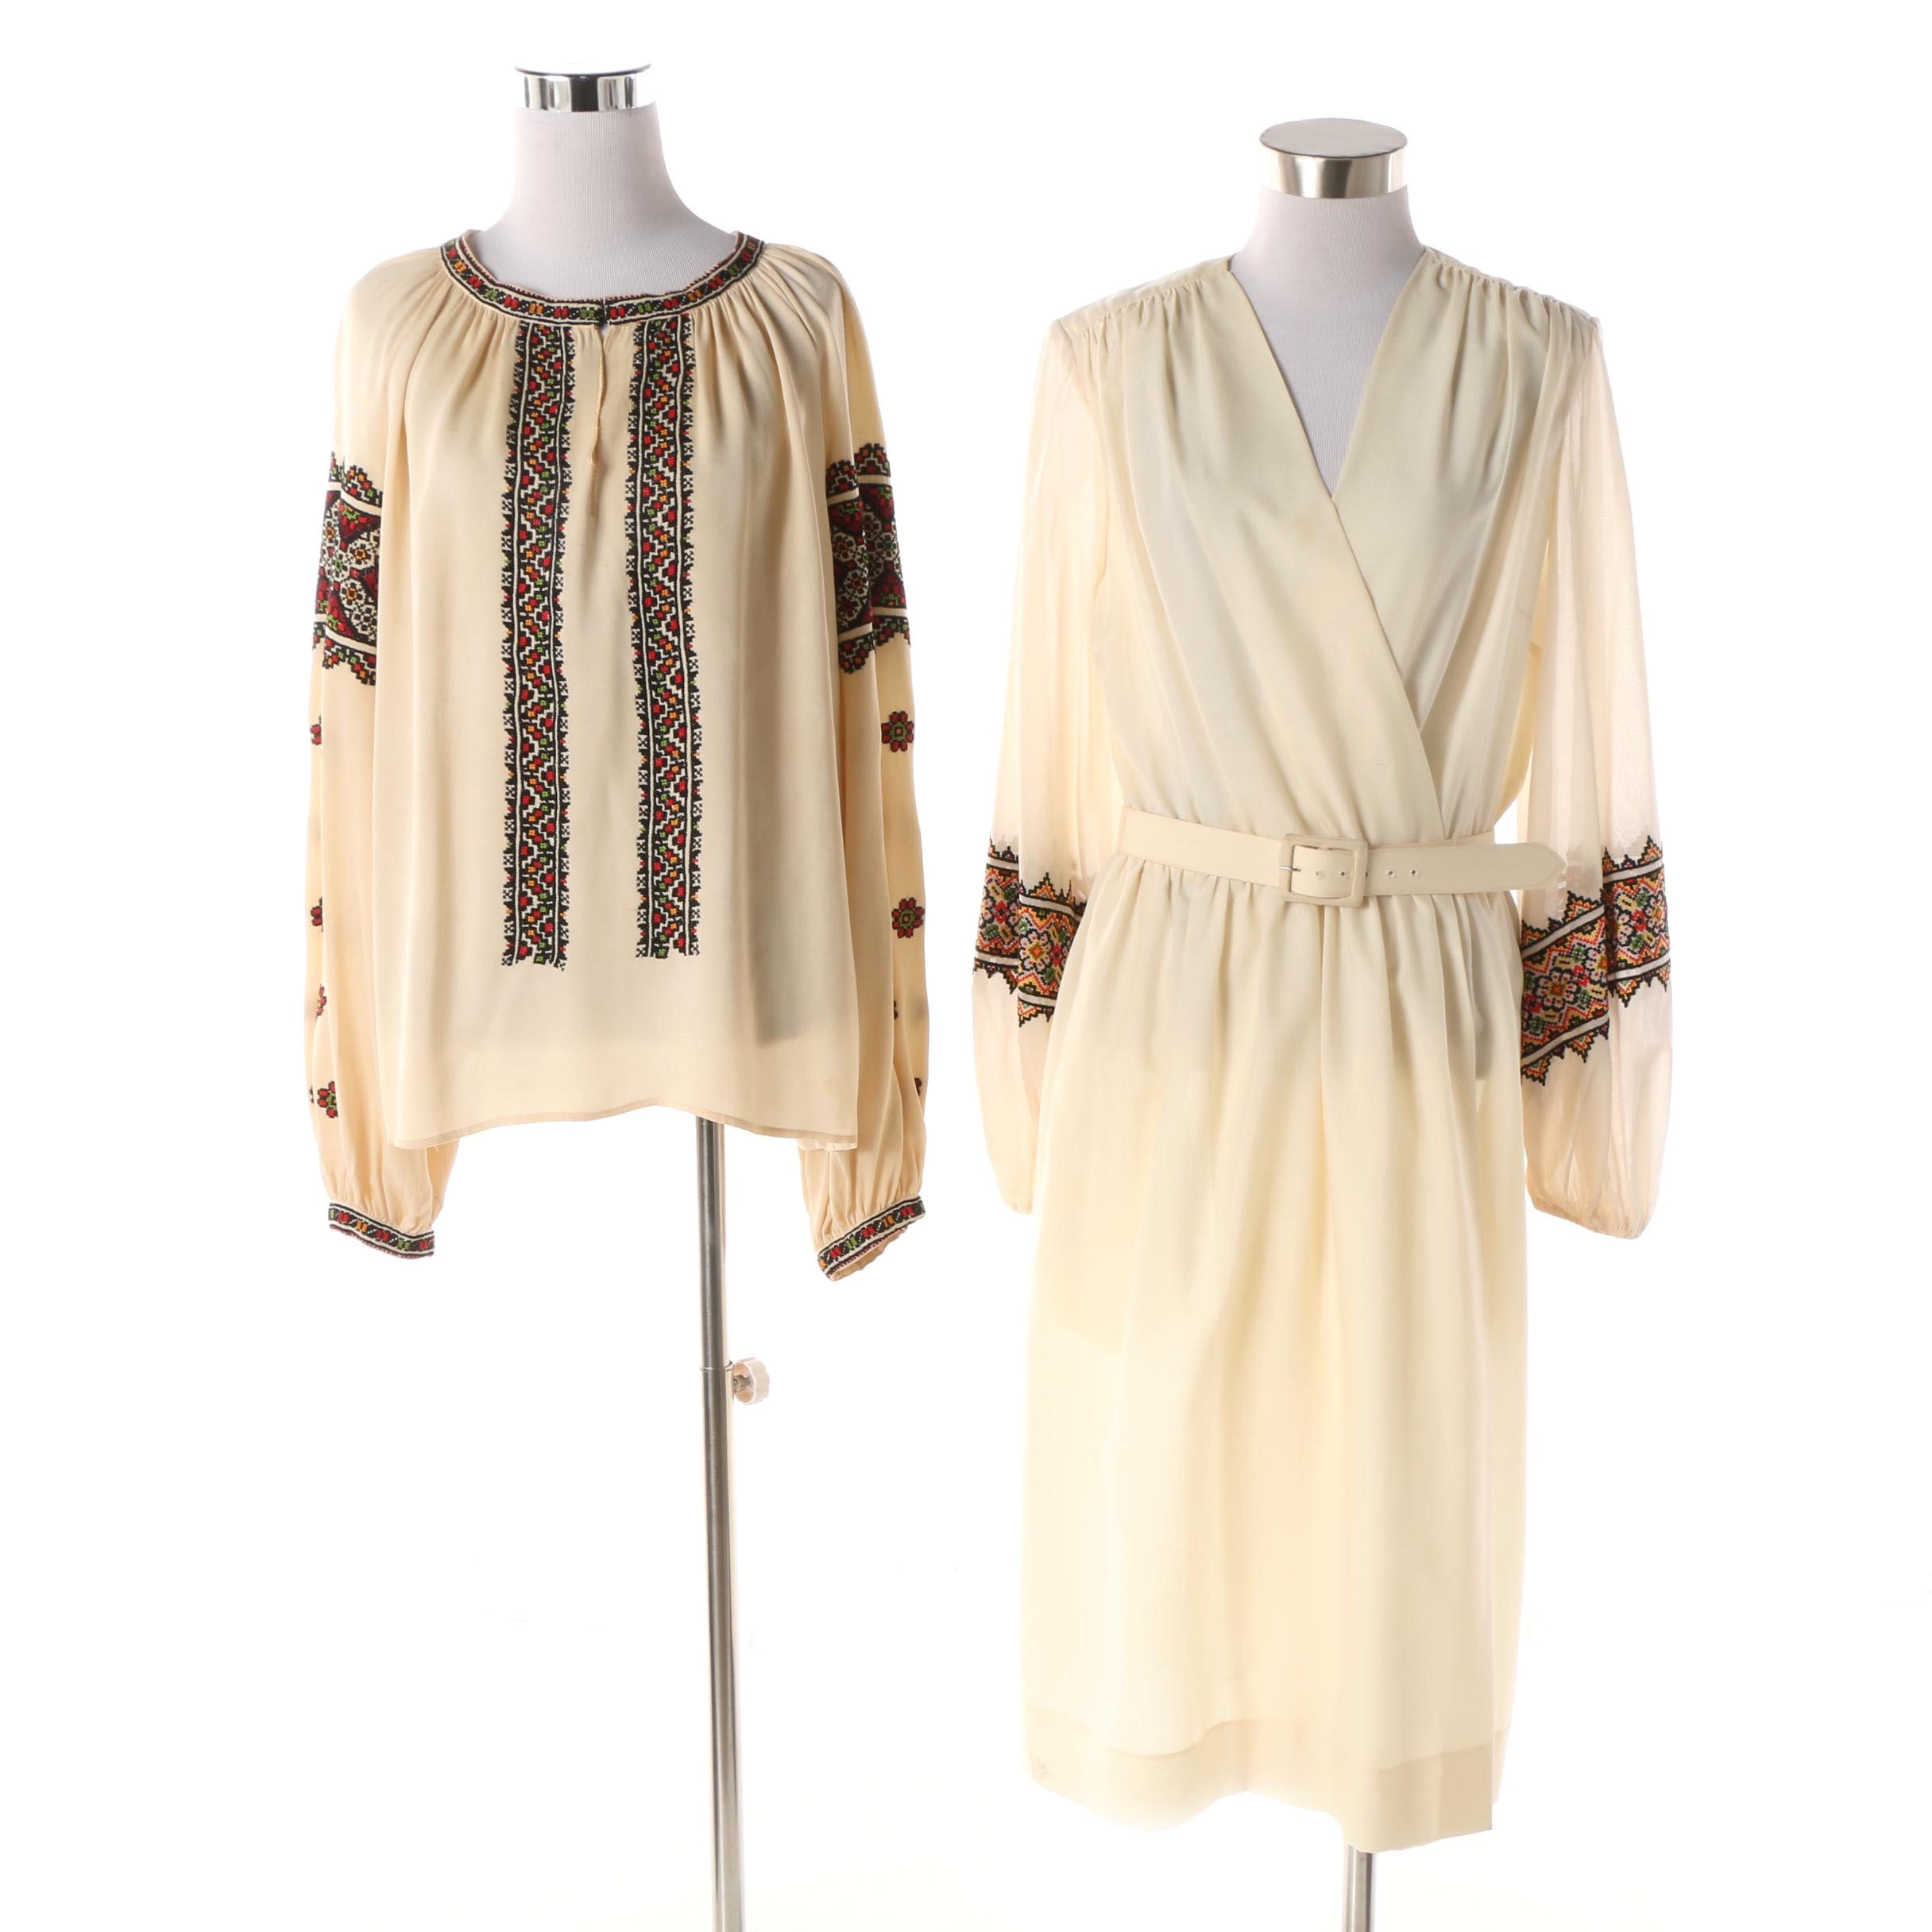 Circa 1970s Folk Inspired Embroidered Dress and Blouse